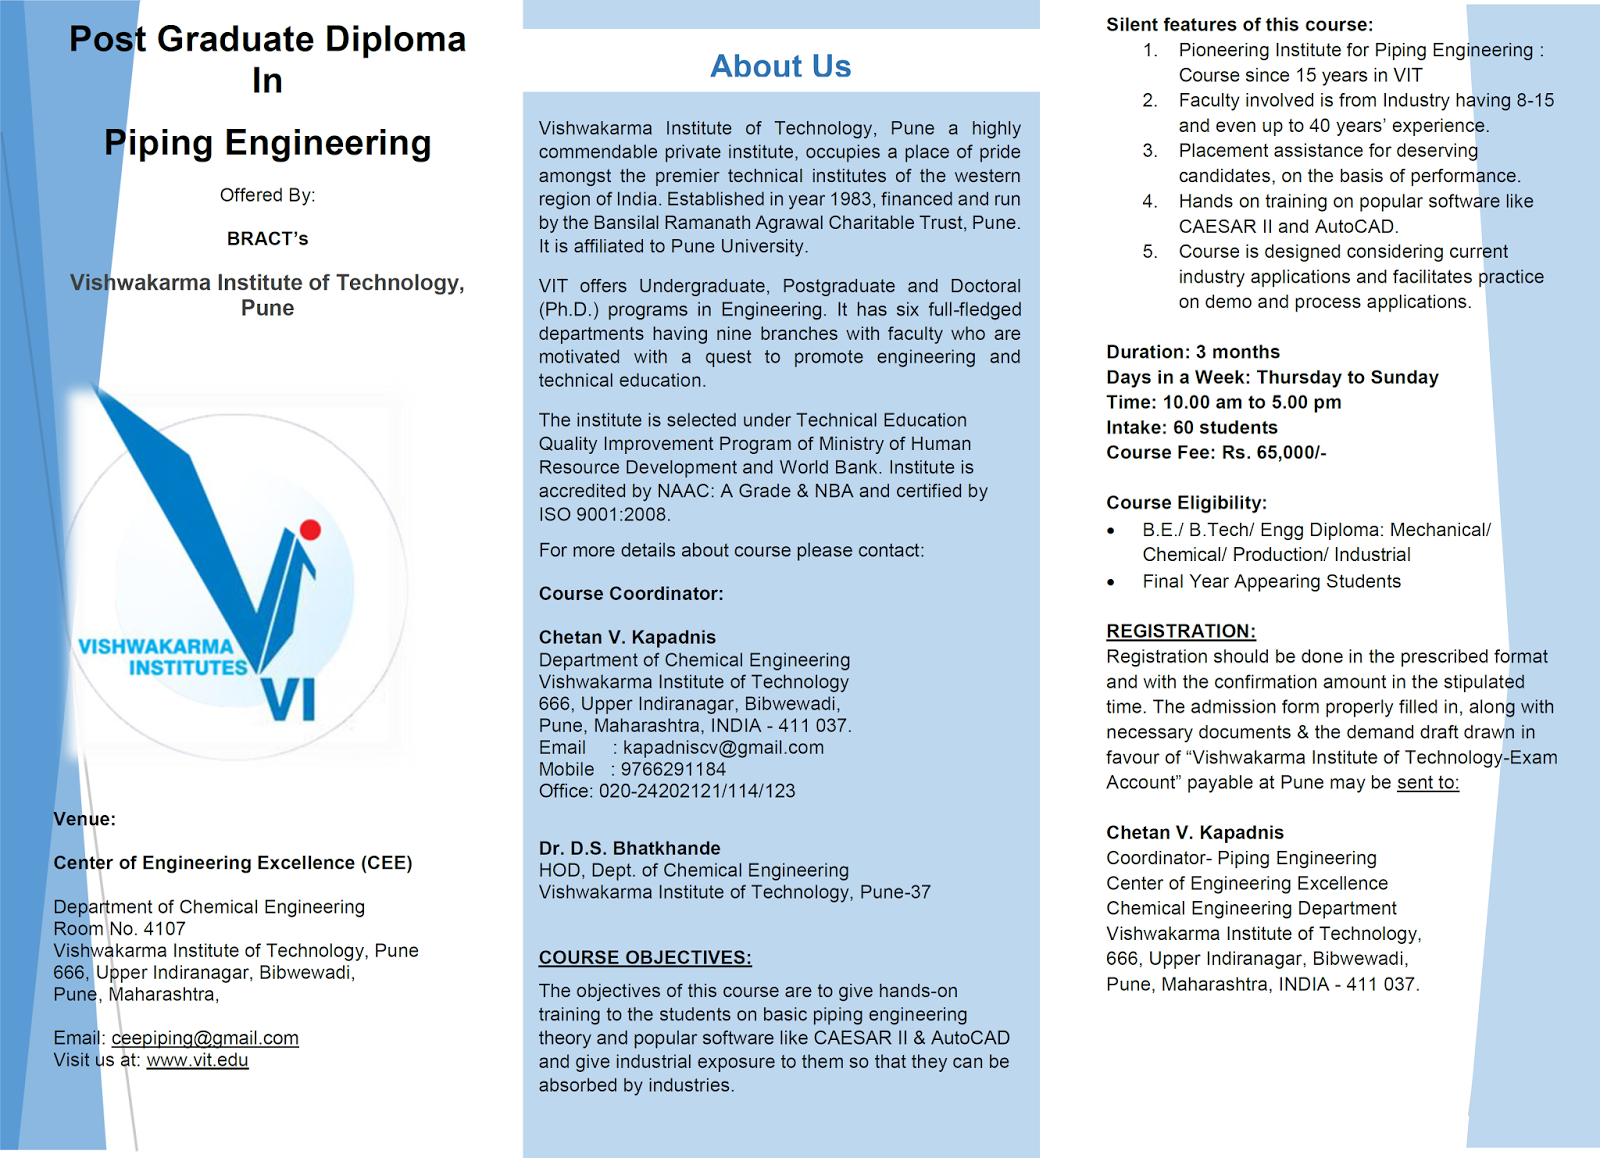 Piping Engineering Course Vit Pune Layout Brochure